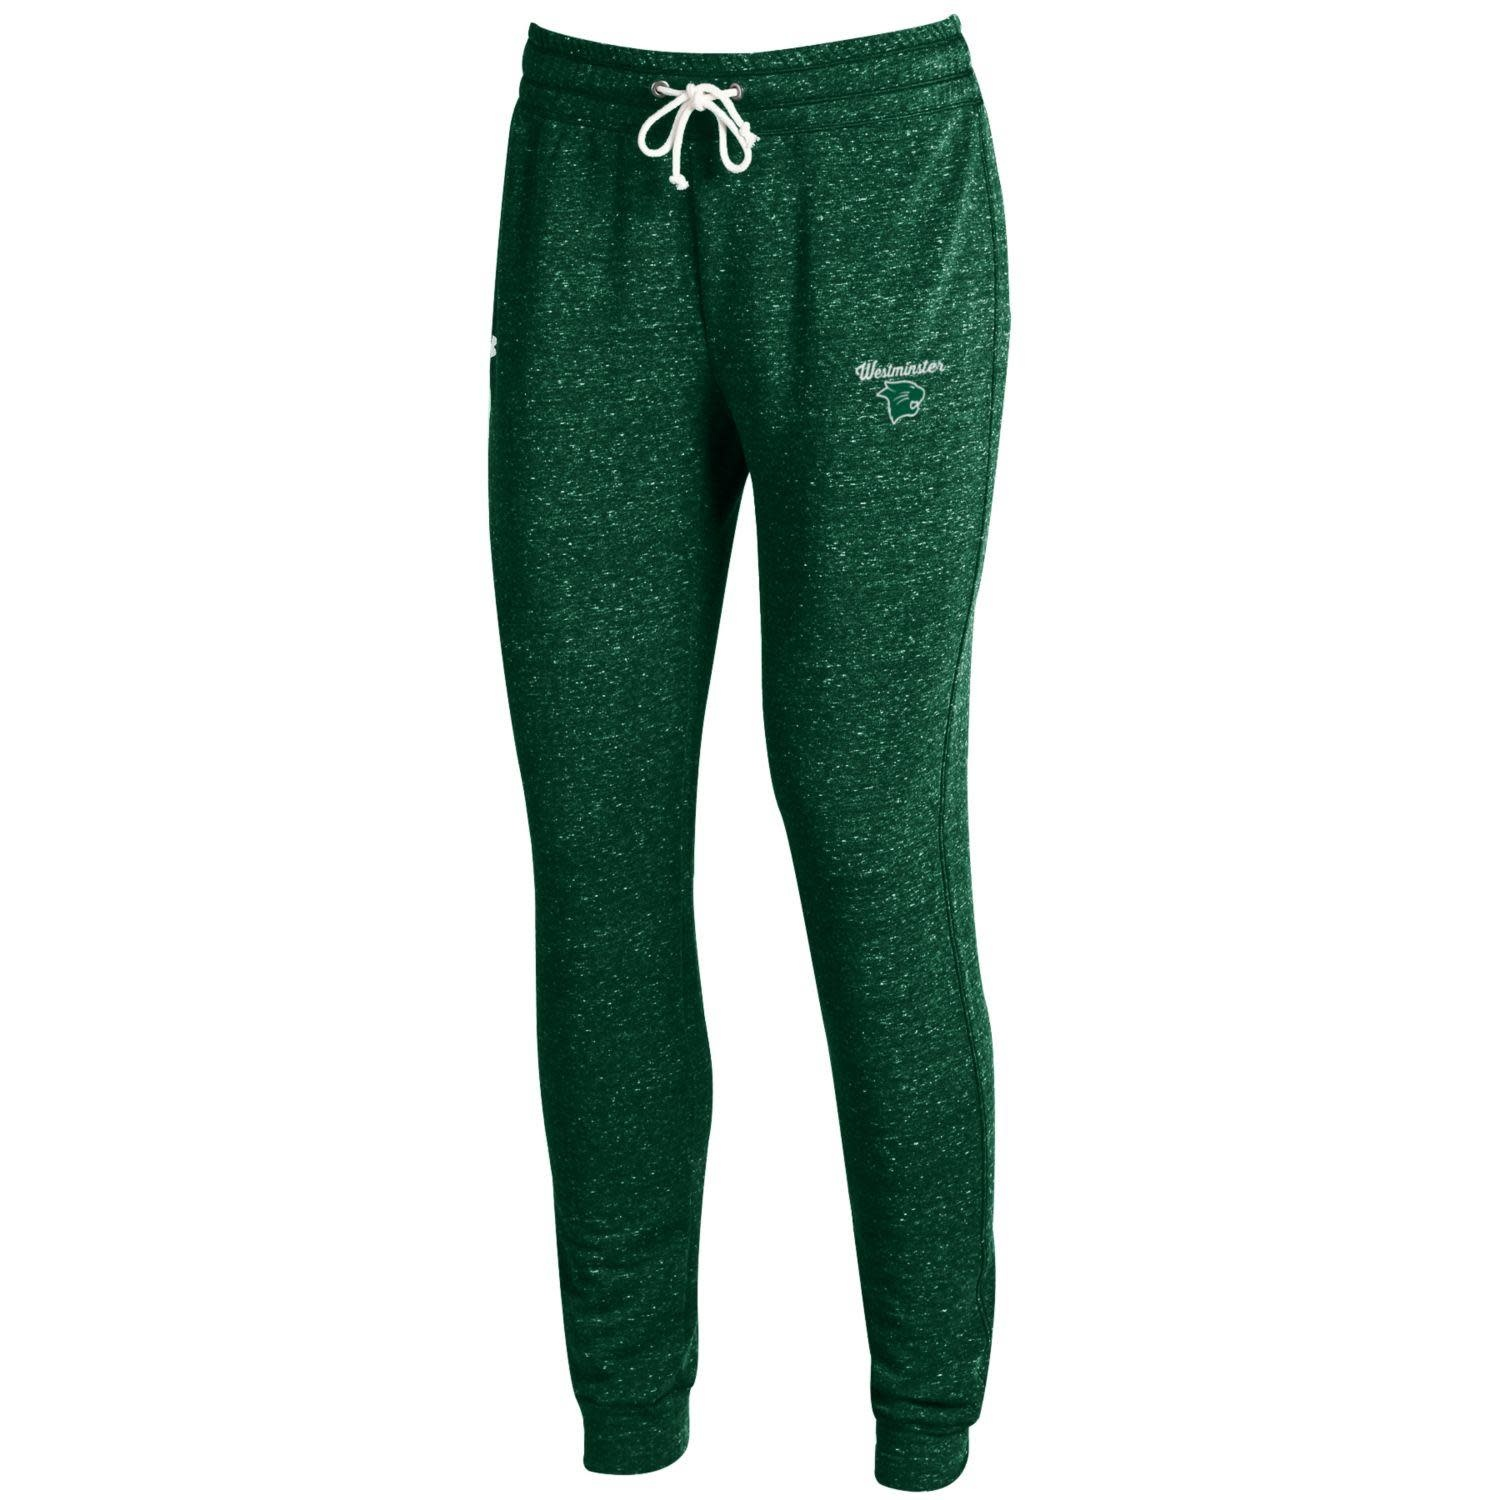 Under Armour Sweatpants: UA Women's Skinny - Cuff Bottom Light Forest